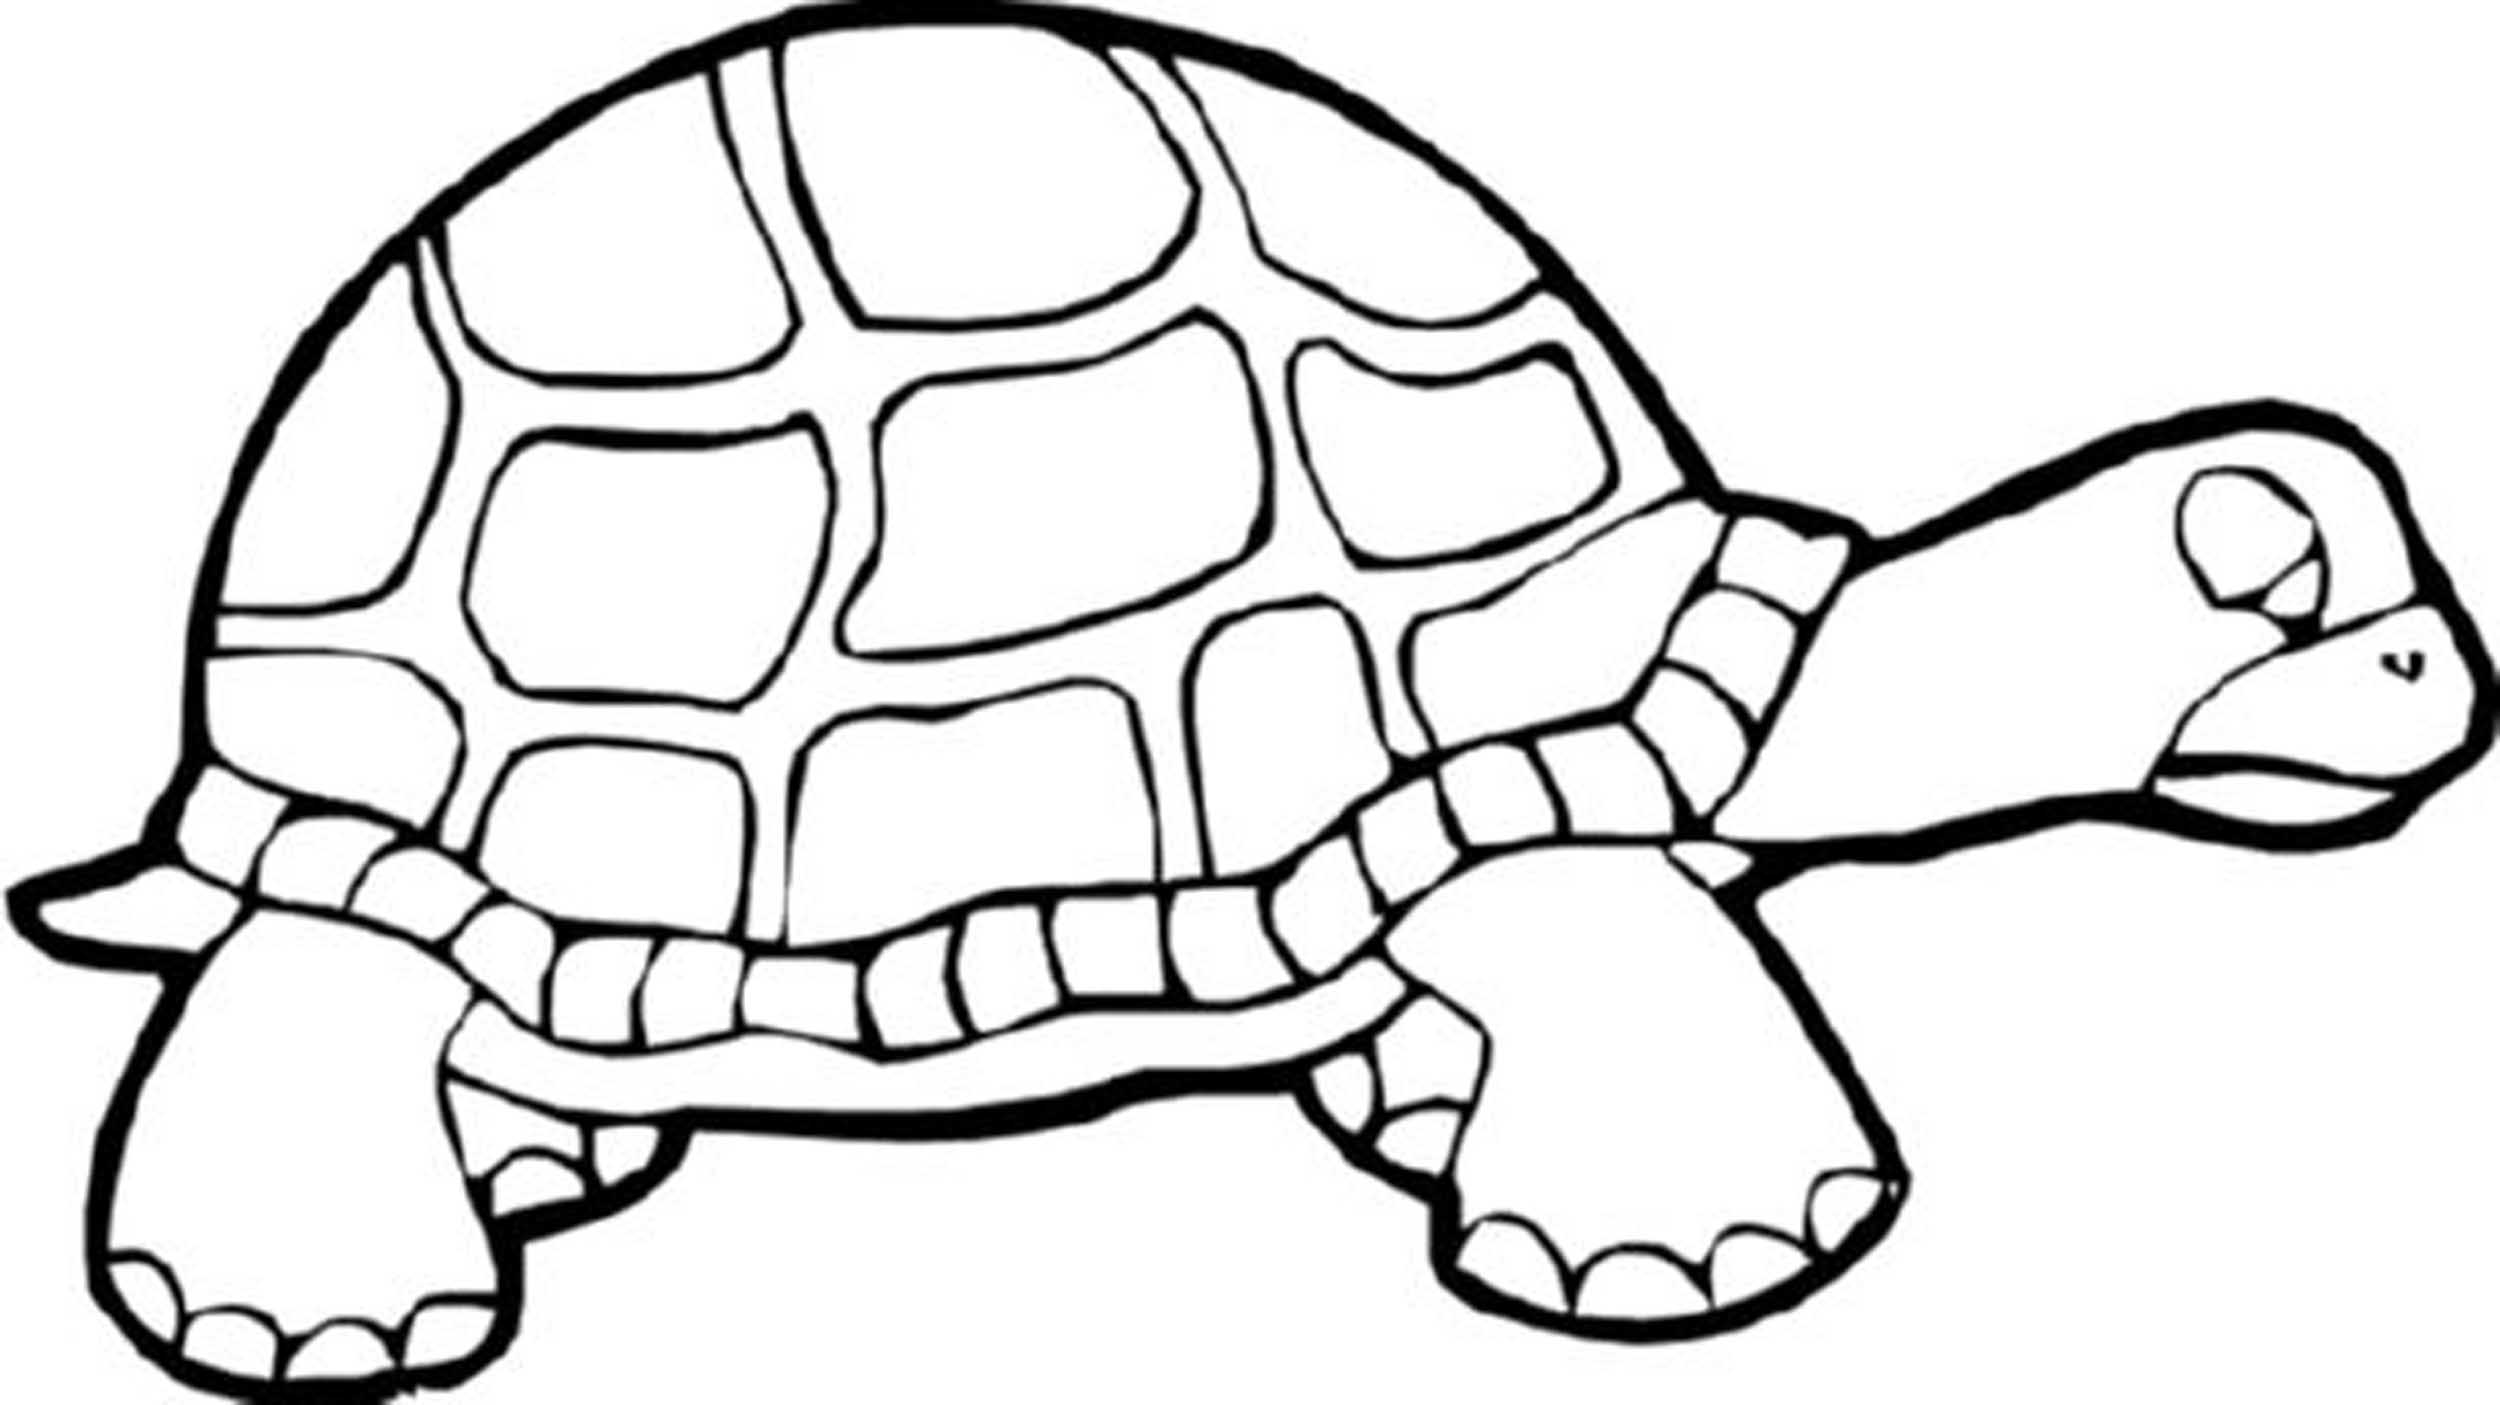 turtles colouring free smiling sea turtle coloring page download print colouring turtles